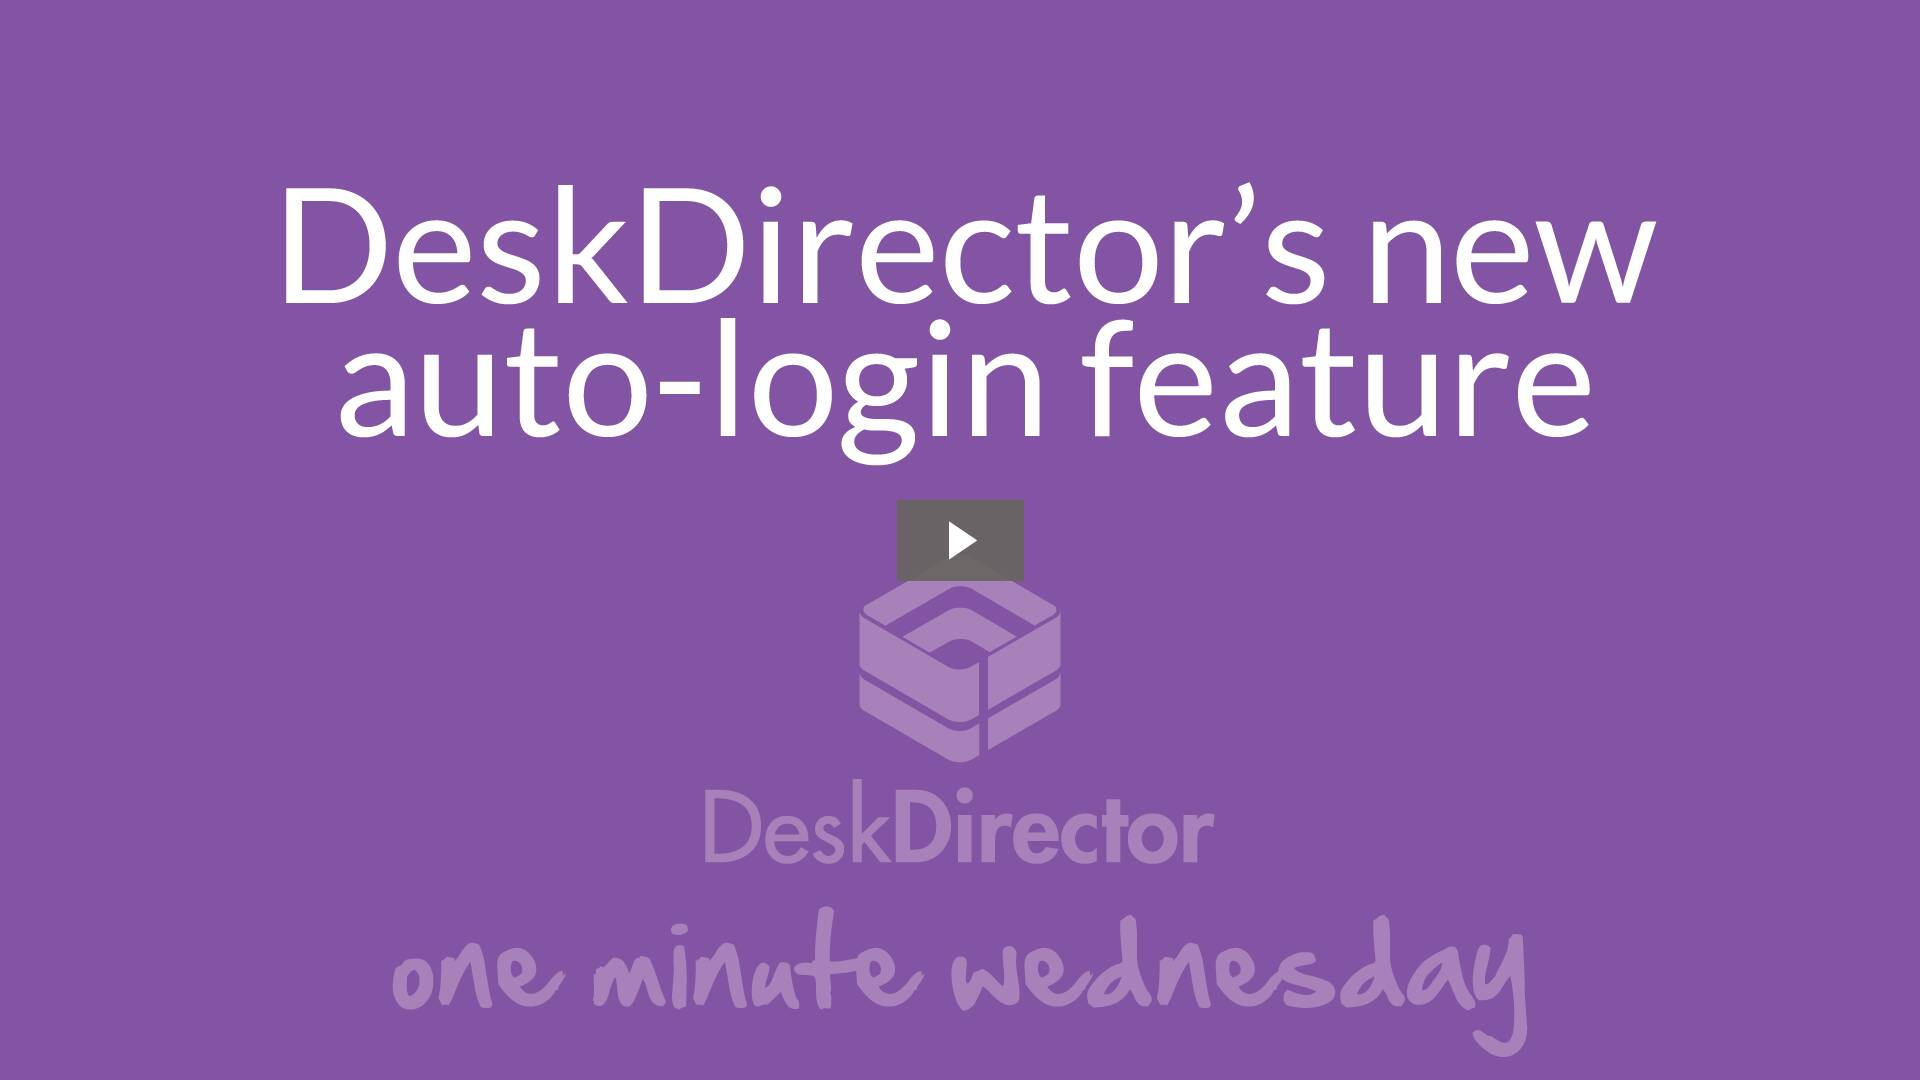 DeskDirector's new auto-login feature